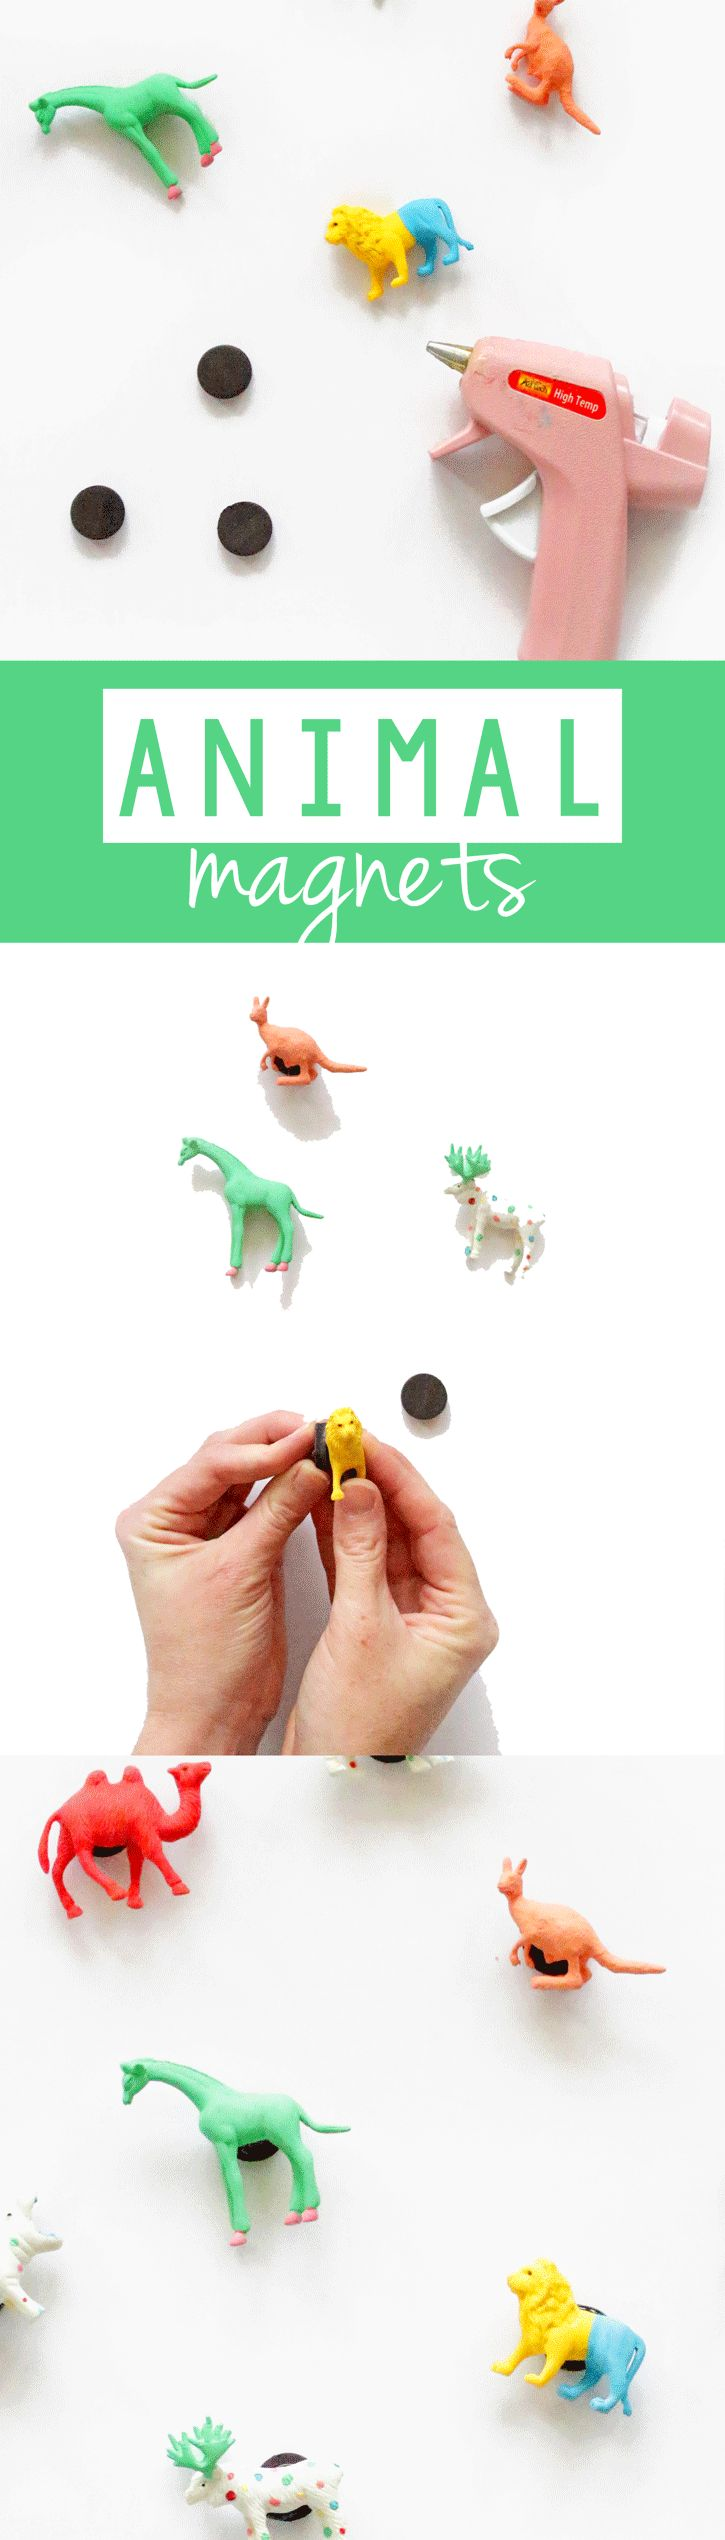 Add some whimsy to the fridge or a magnet board with DIY Animal Magnets! We are painting tiny toys and turning them into magnets!